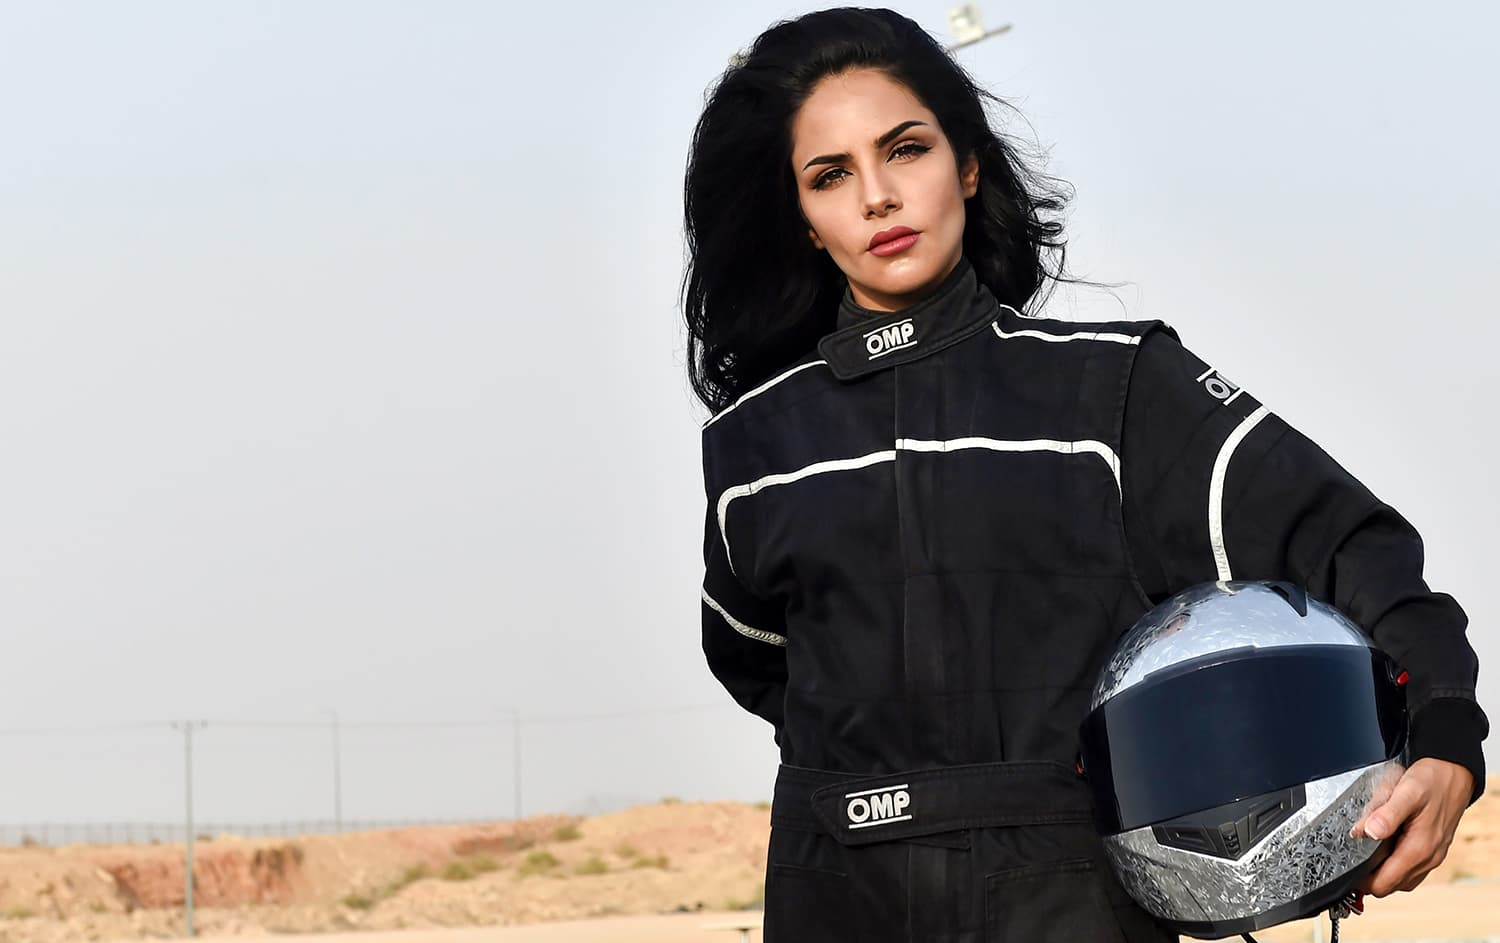 Rana Almimoni poses with her helmet on the track in Dirab motor park. — AFP